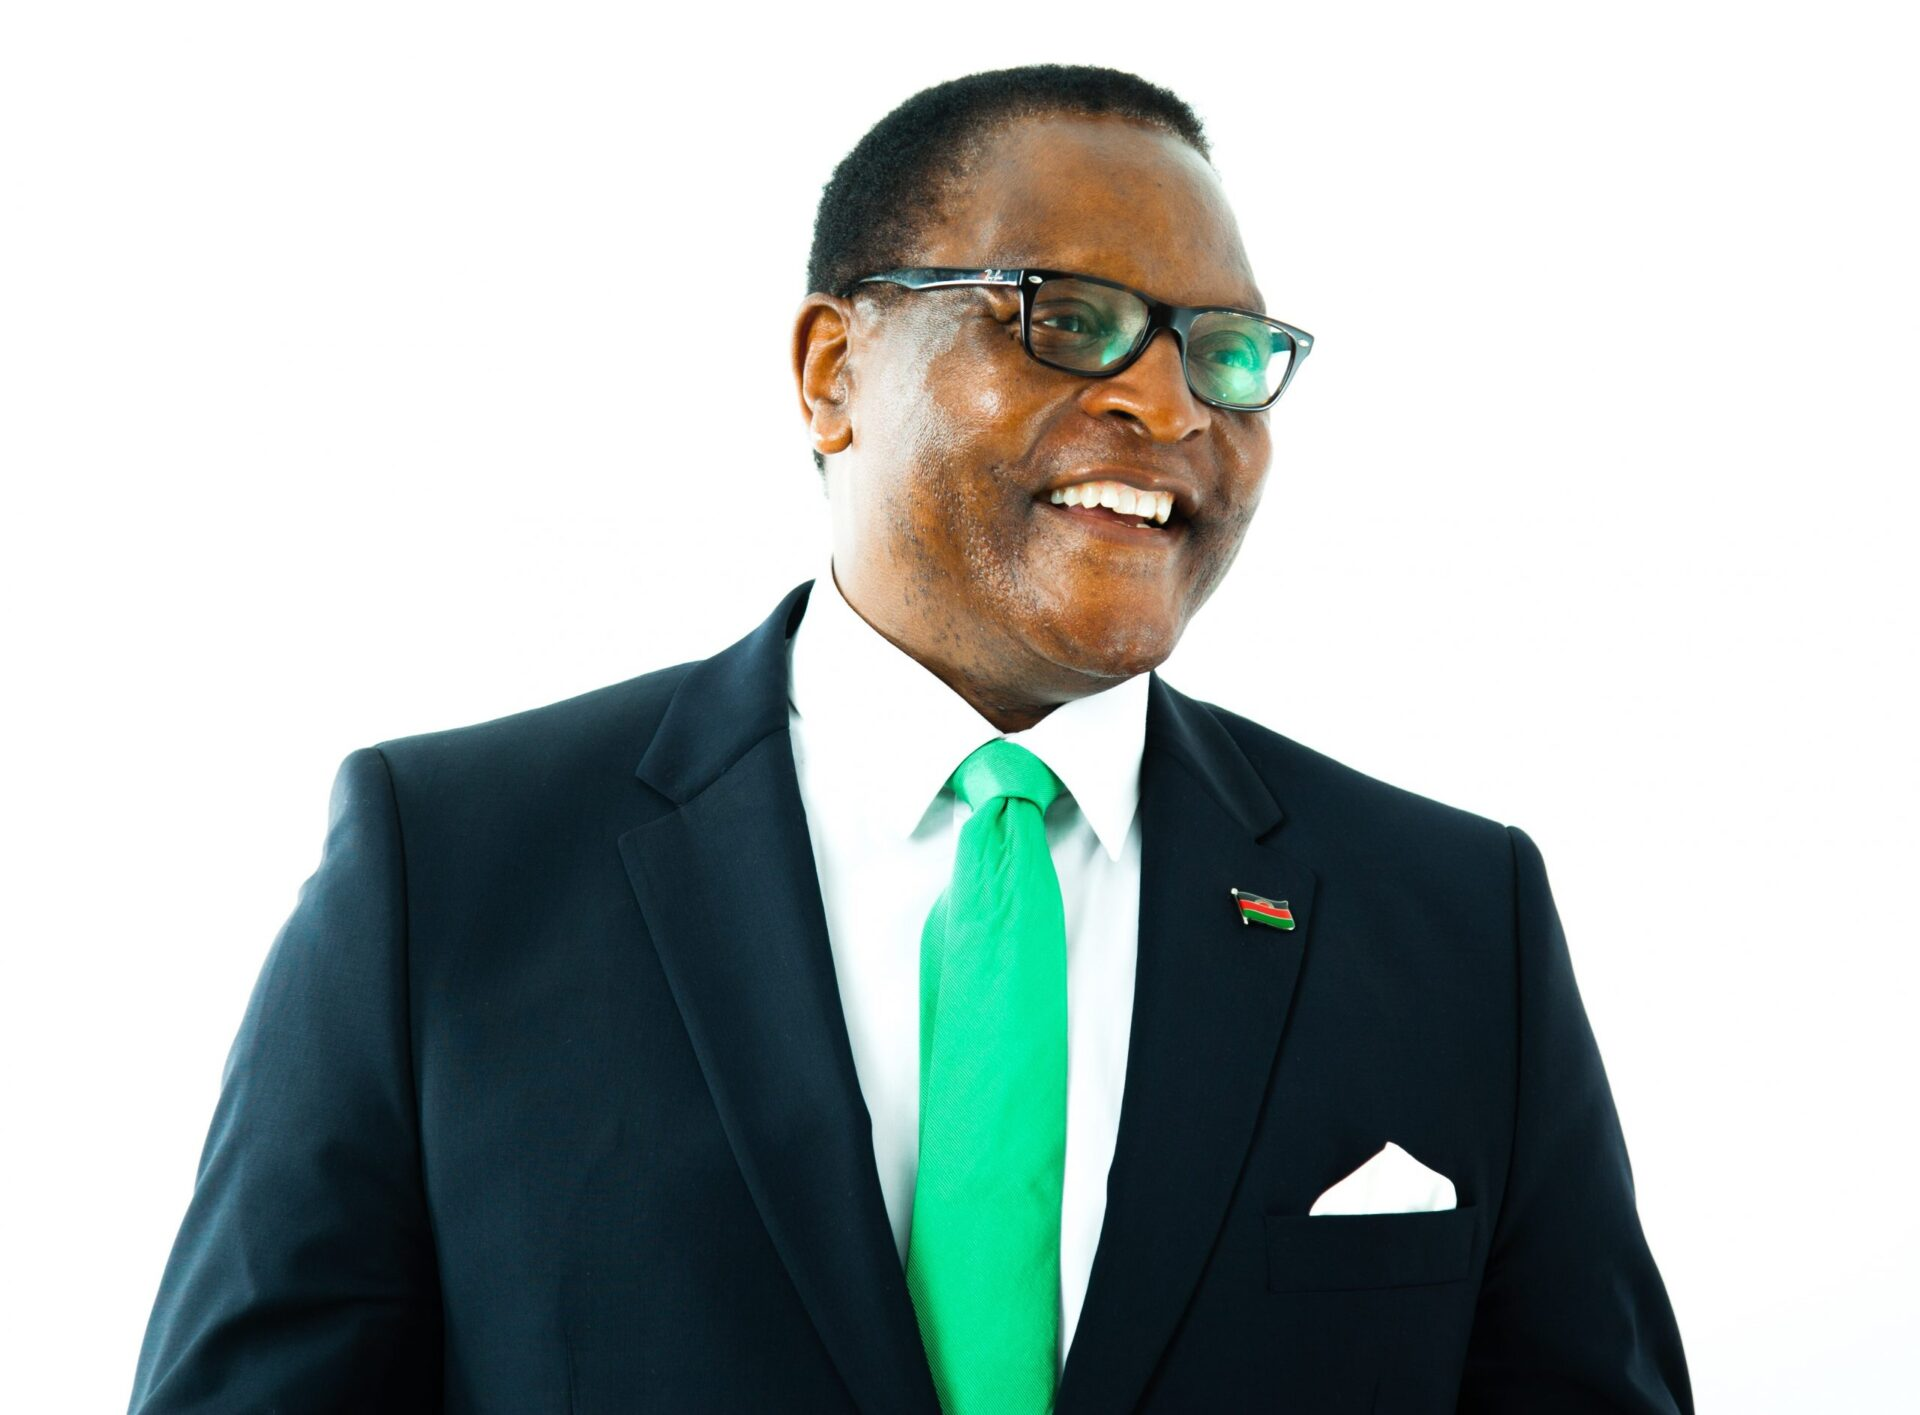 Malawi President Travels To the UK For Virtual Conference, Blames Poor Internet In His Country